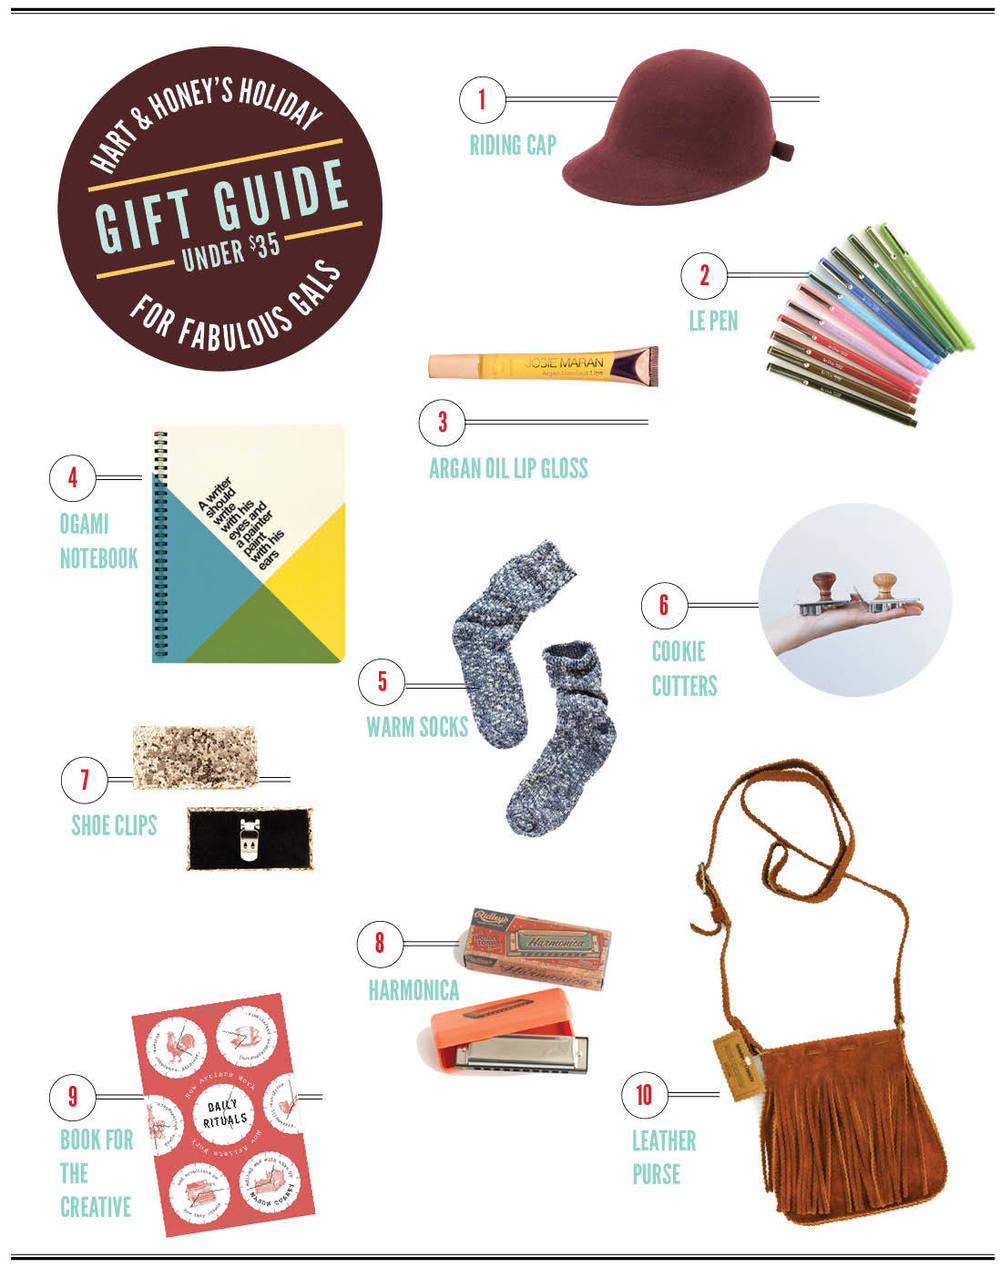 1.Need Supply  / 2. Le Pen  / 3.Josie Maran / 4.Notebook  / 5. Madewell   6. Harriott Grace / 7. Ban.do / 8.Harmonica / 9.Book / 10. Tigertree